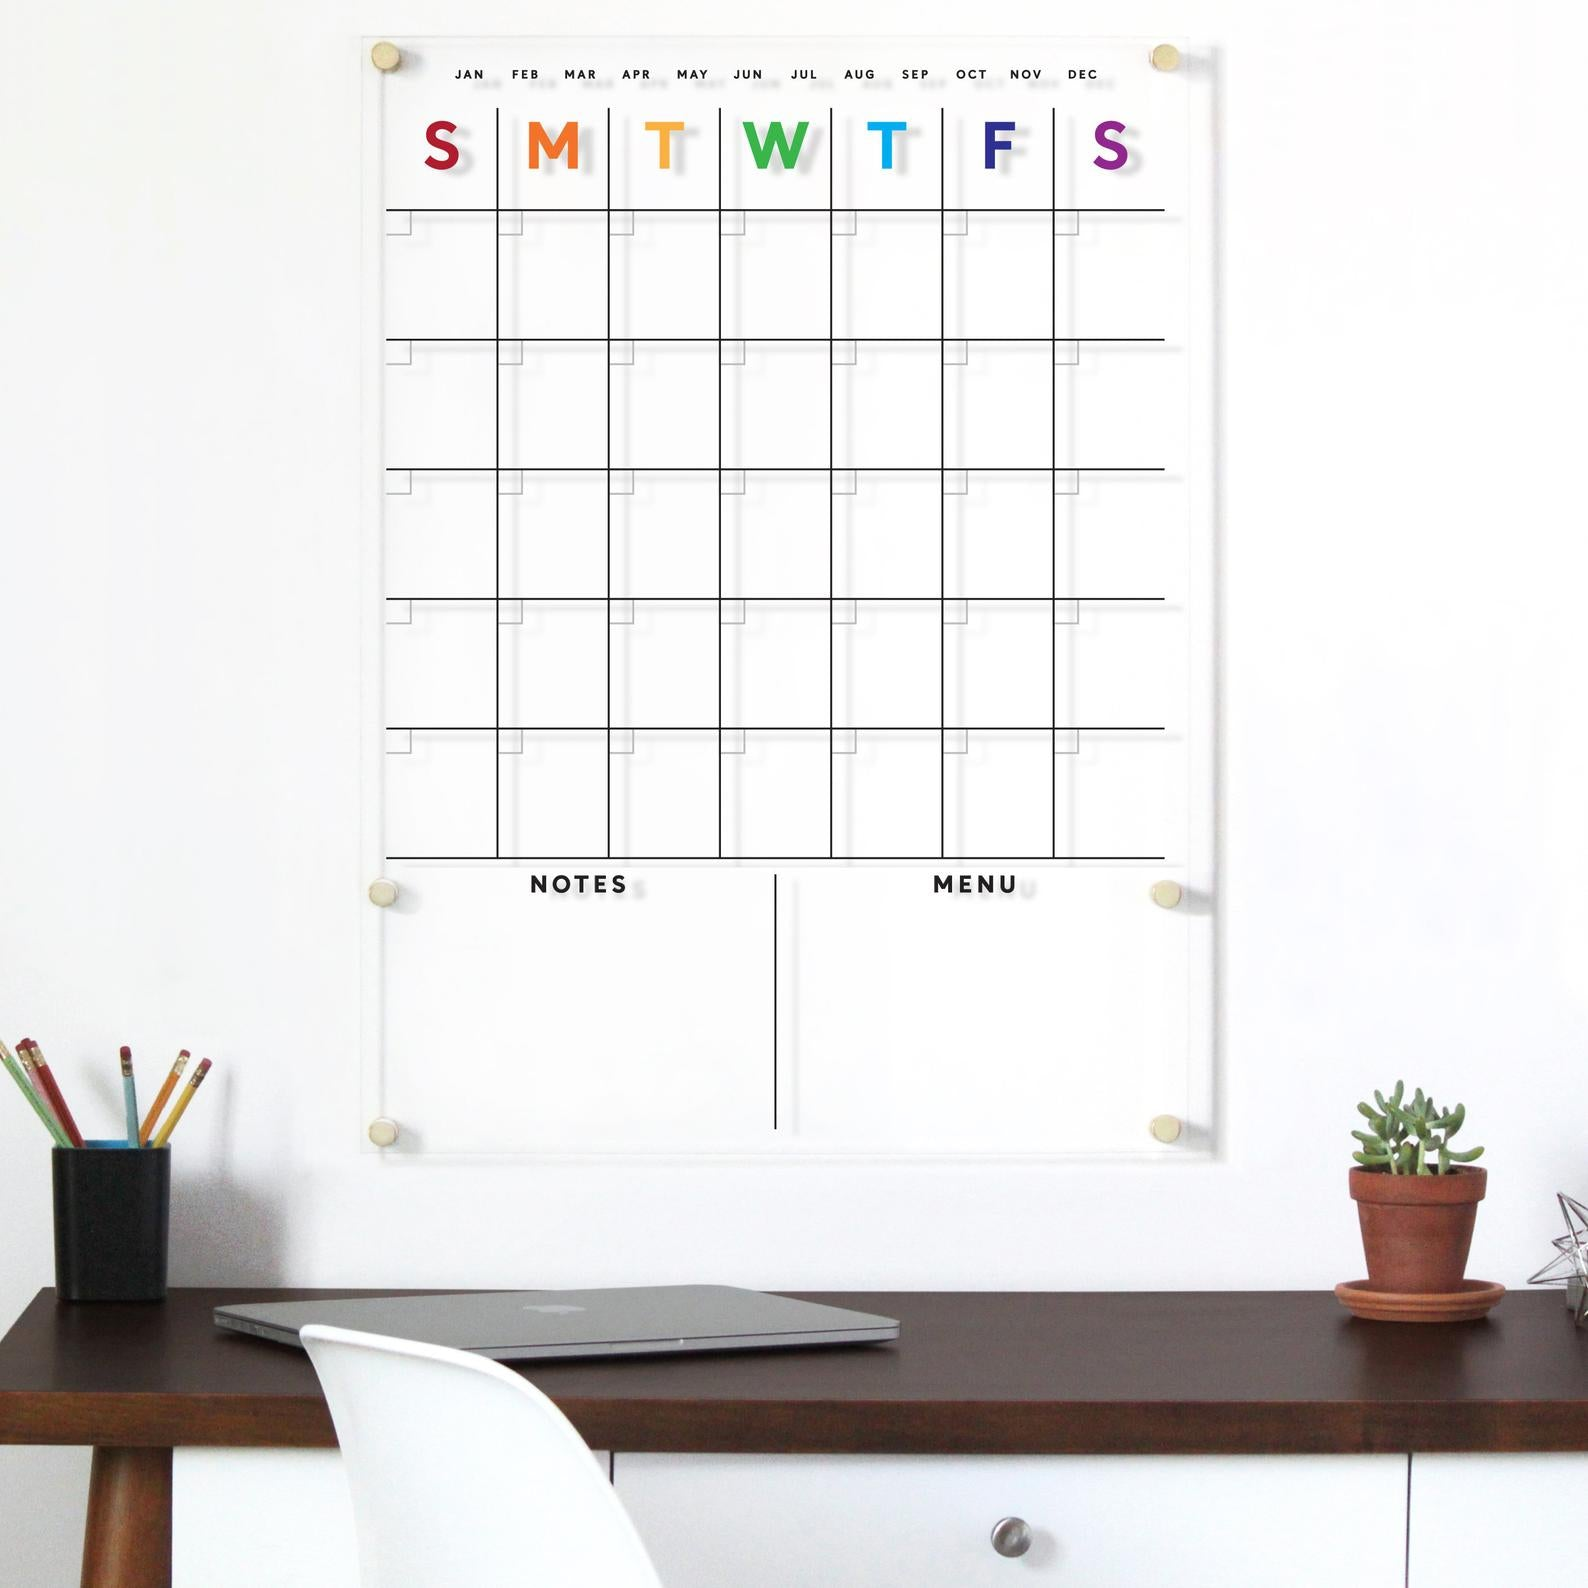 Acrylic Calendar RAINBOW with bottom notes CUSTOMIZABLE - Dry Erase Calendar - Lucite Calendar